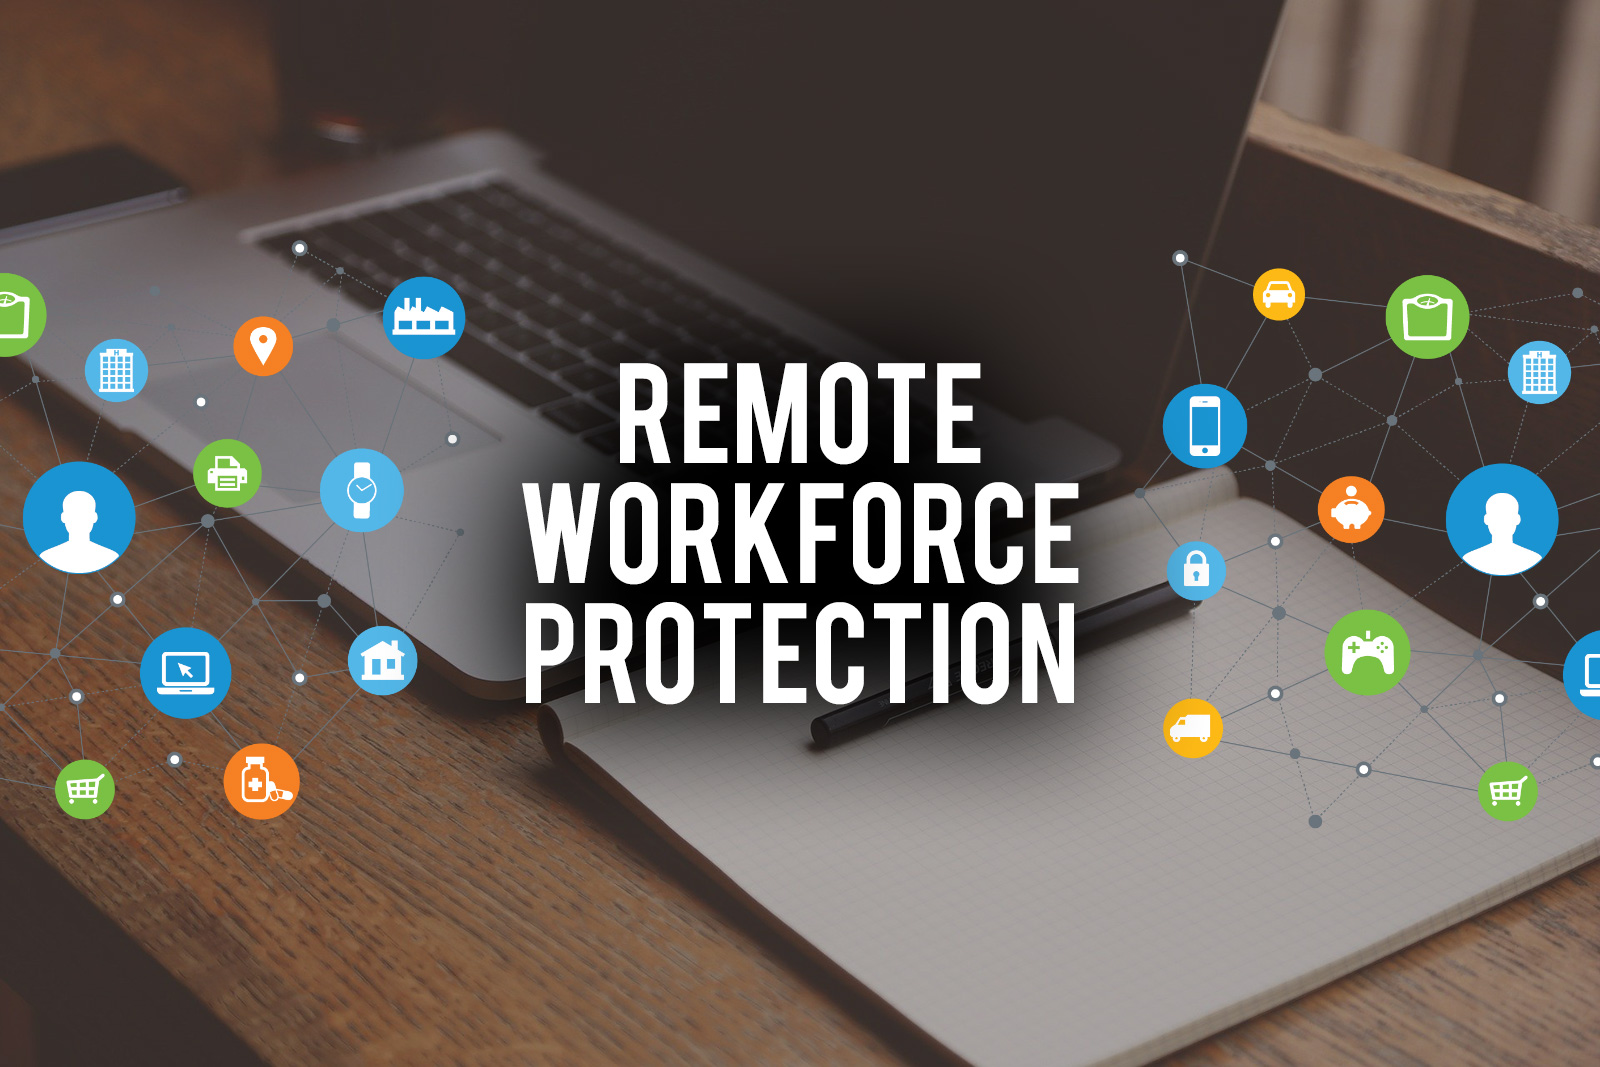 Organizations still rely on weak security for remote workers